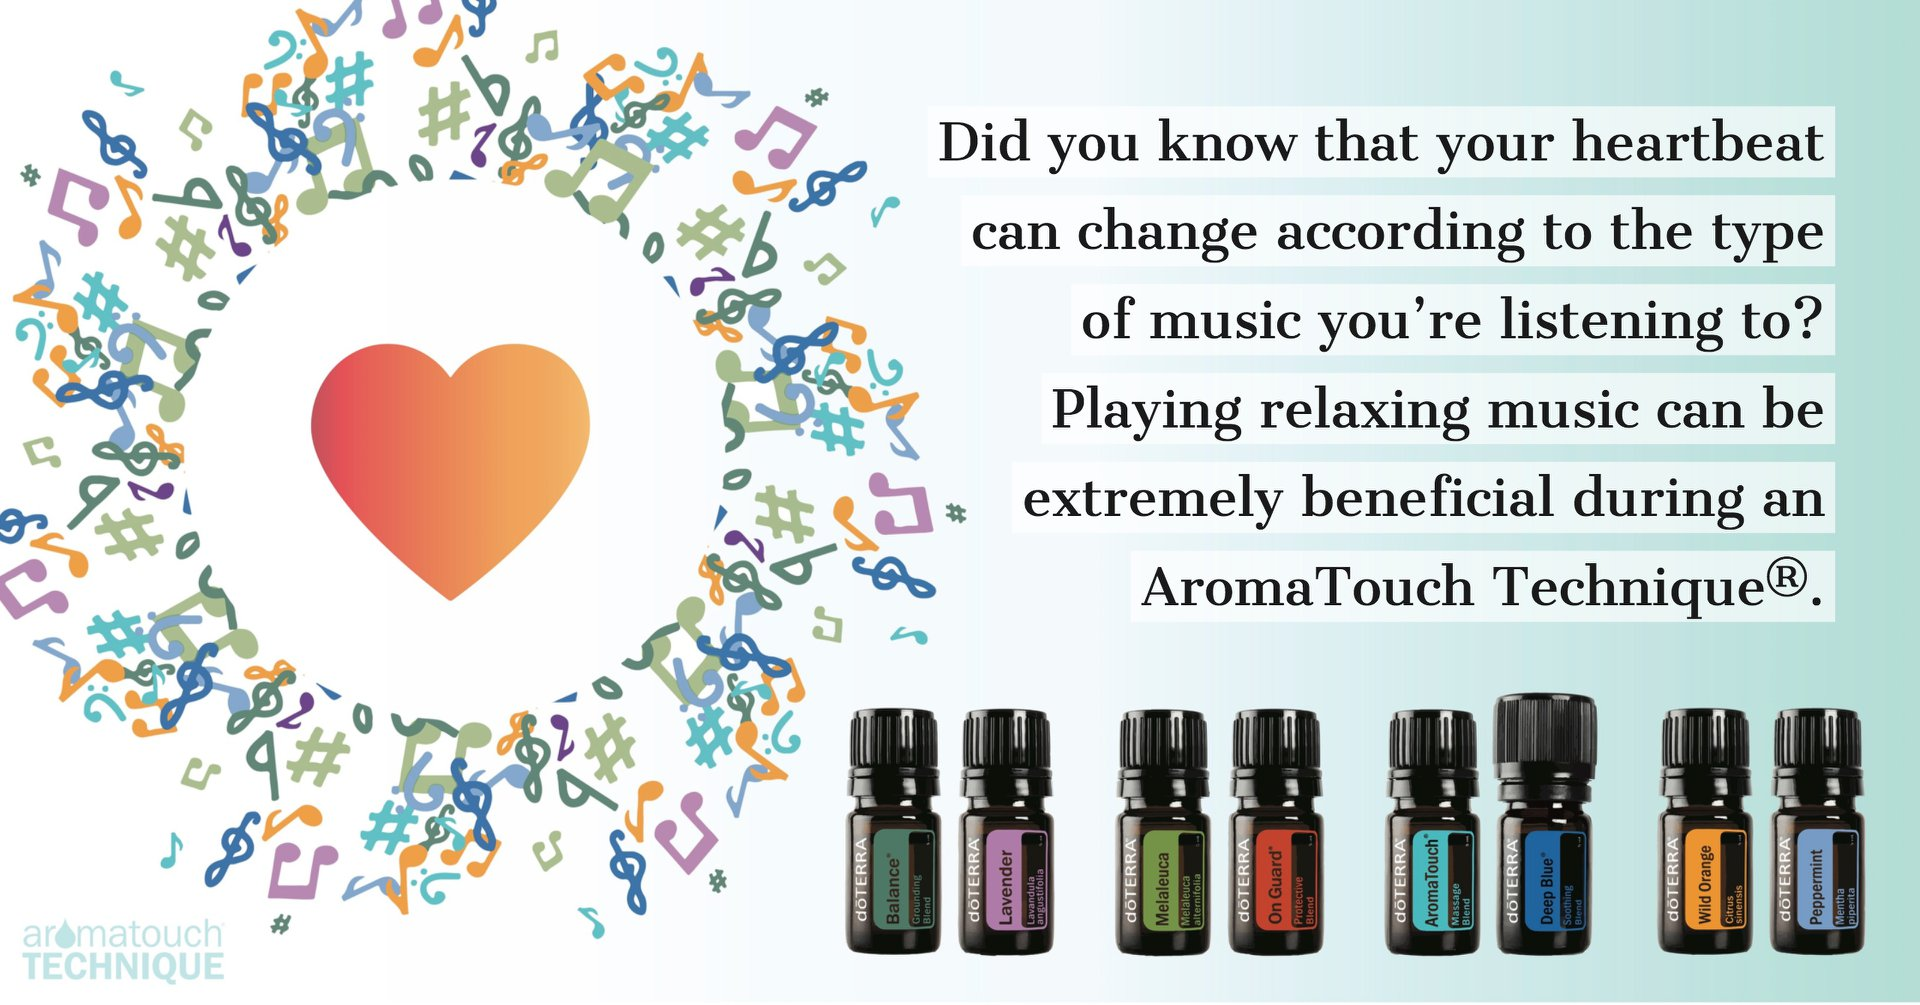 aromatouch and music.jpg